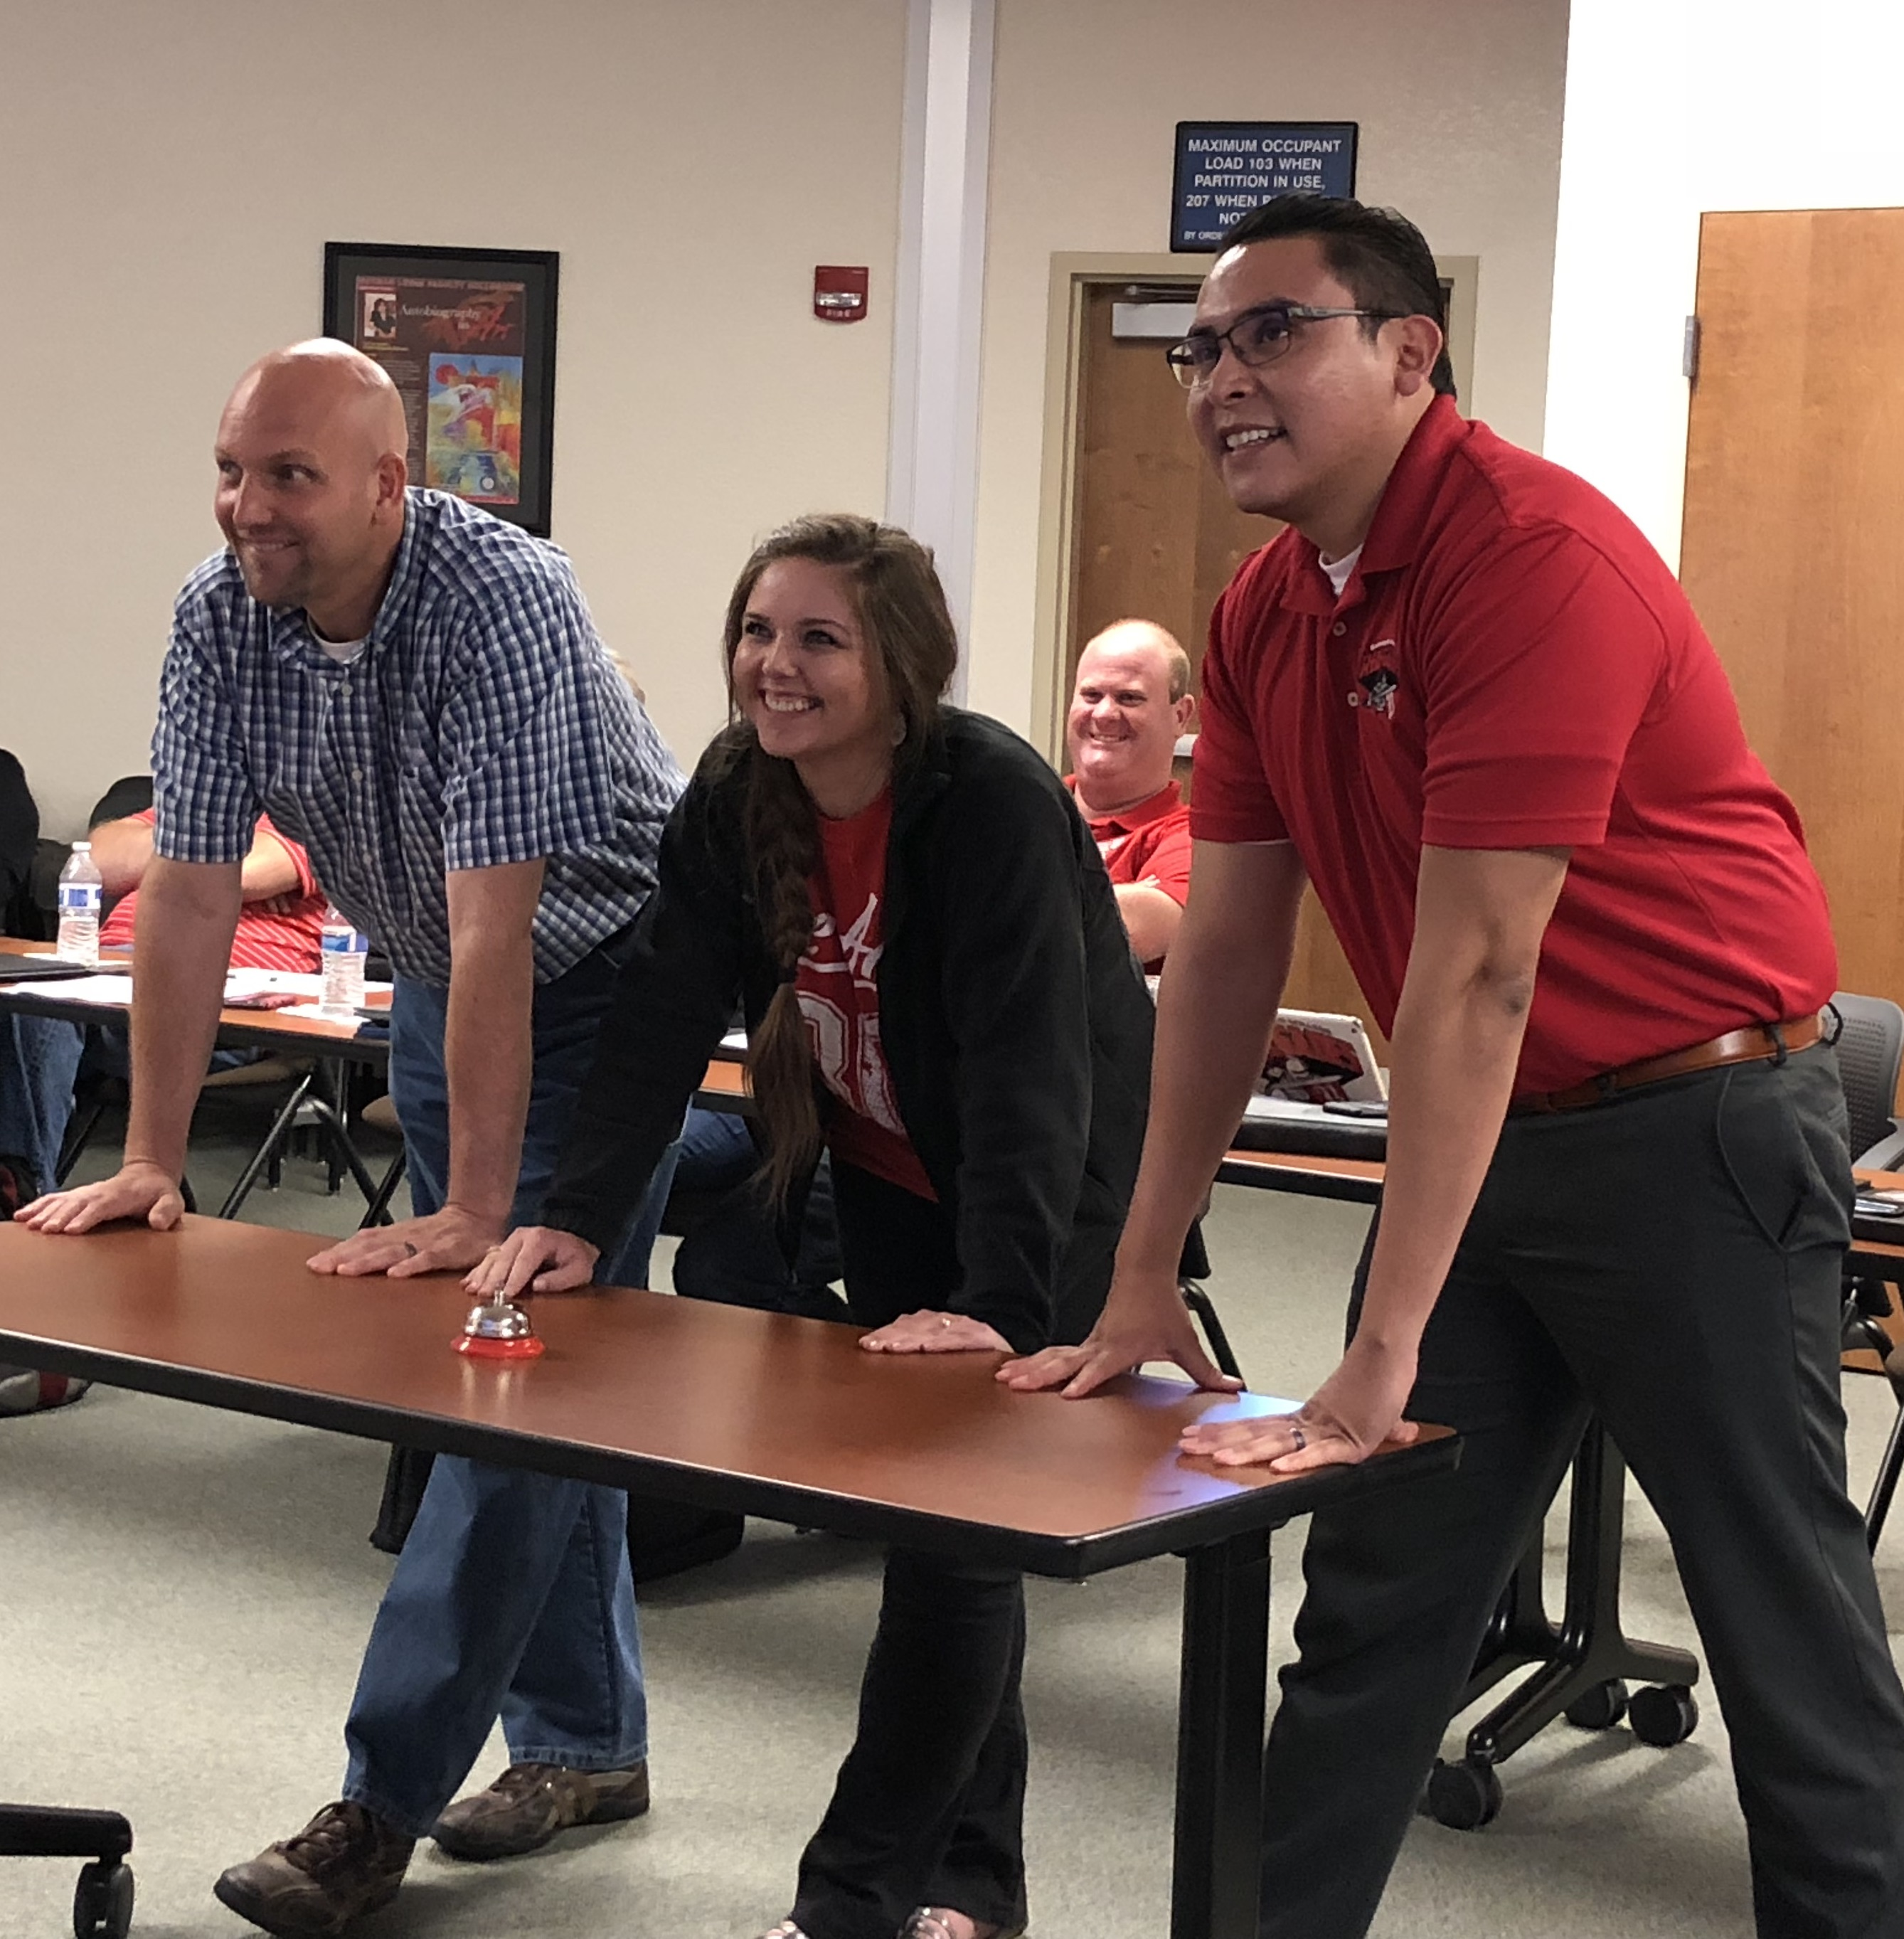 Todd Coston, Lesley Bonds, Abel Guzman participating in a game a jeopardy organized by Manny at Cabinet June 4 2018